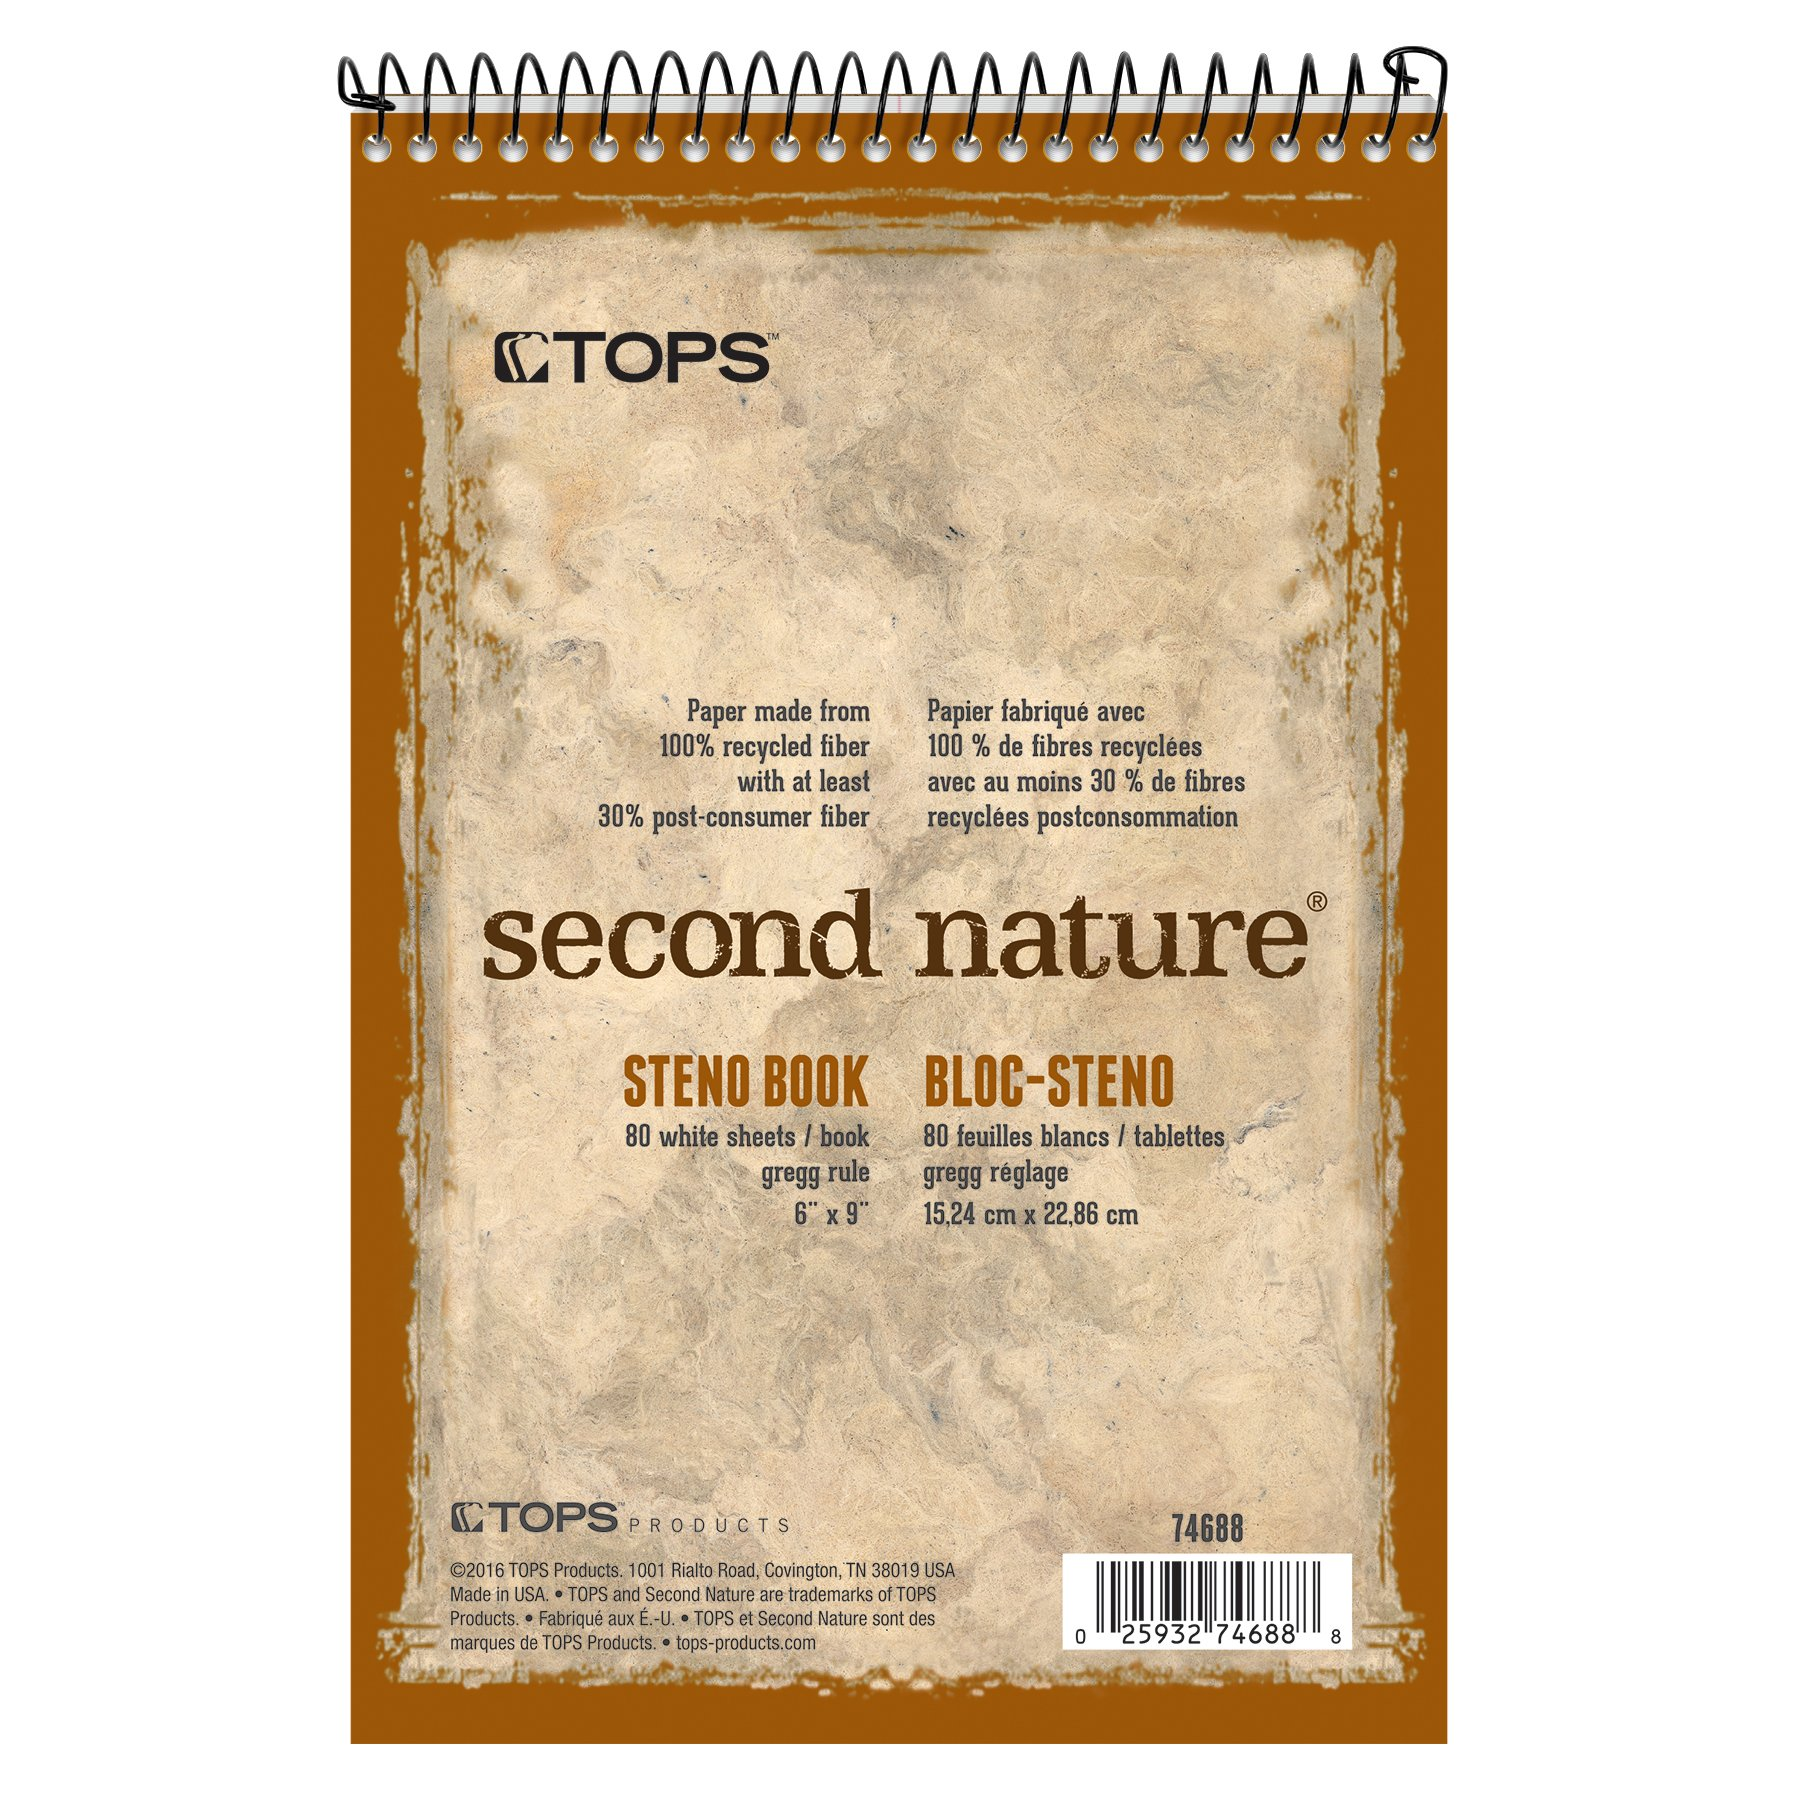 TOPS Second Nature Steno Books, 6'' x 9'', Gregg Rule, 80 Sheets, 12 Pack (74688) by TOPS